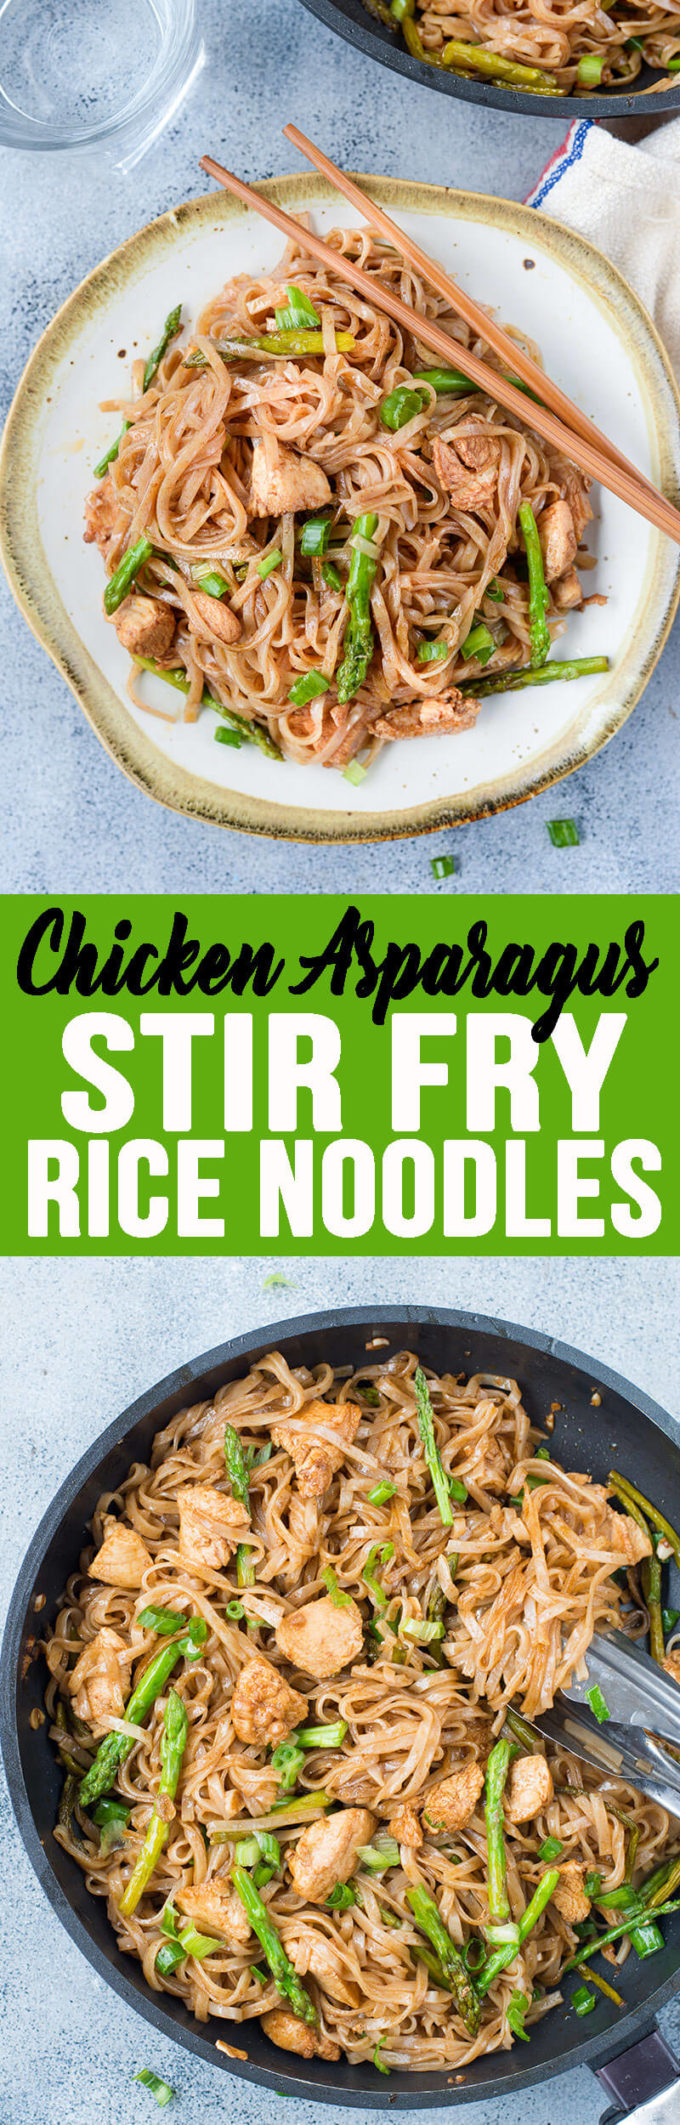 This Stir Fry Noodles is a quick stir fryrecipe with bursting Asian flavors. All you will need is one pan and less than 30 minutes to make a delicious weeknight dinner. While Chicken and asparagus works as a wonderful combination, you add any vegetable of your choice.